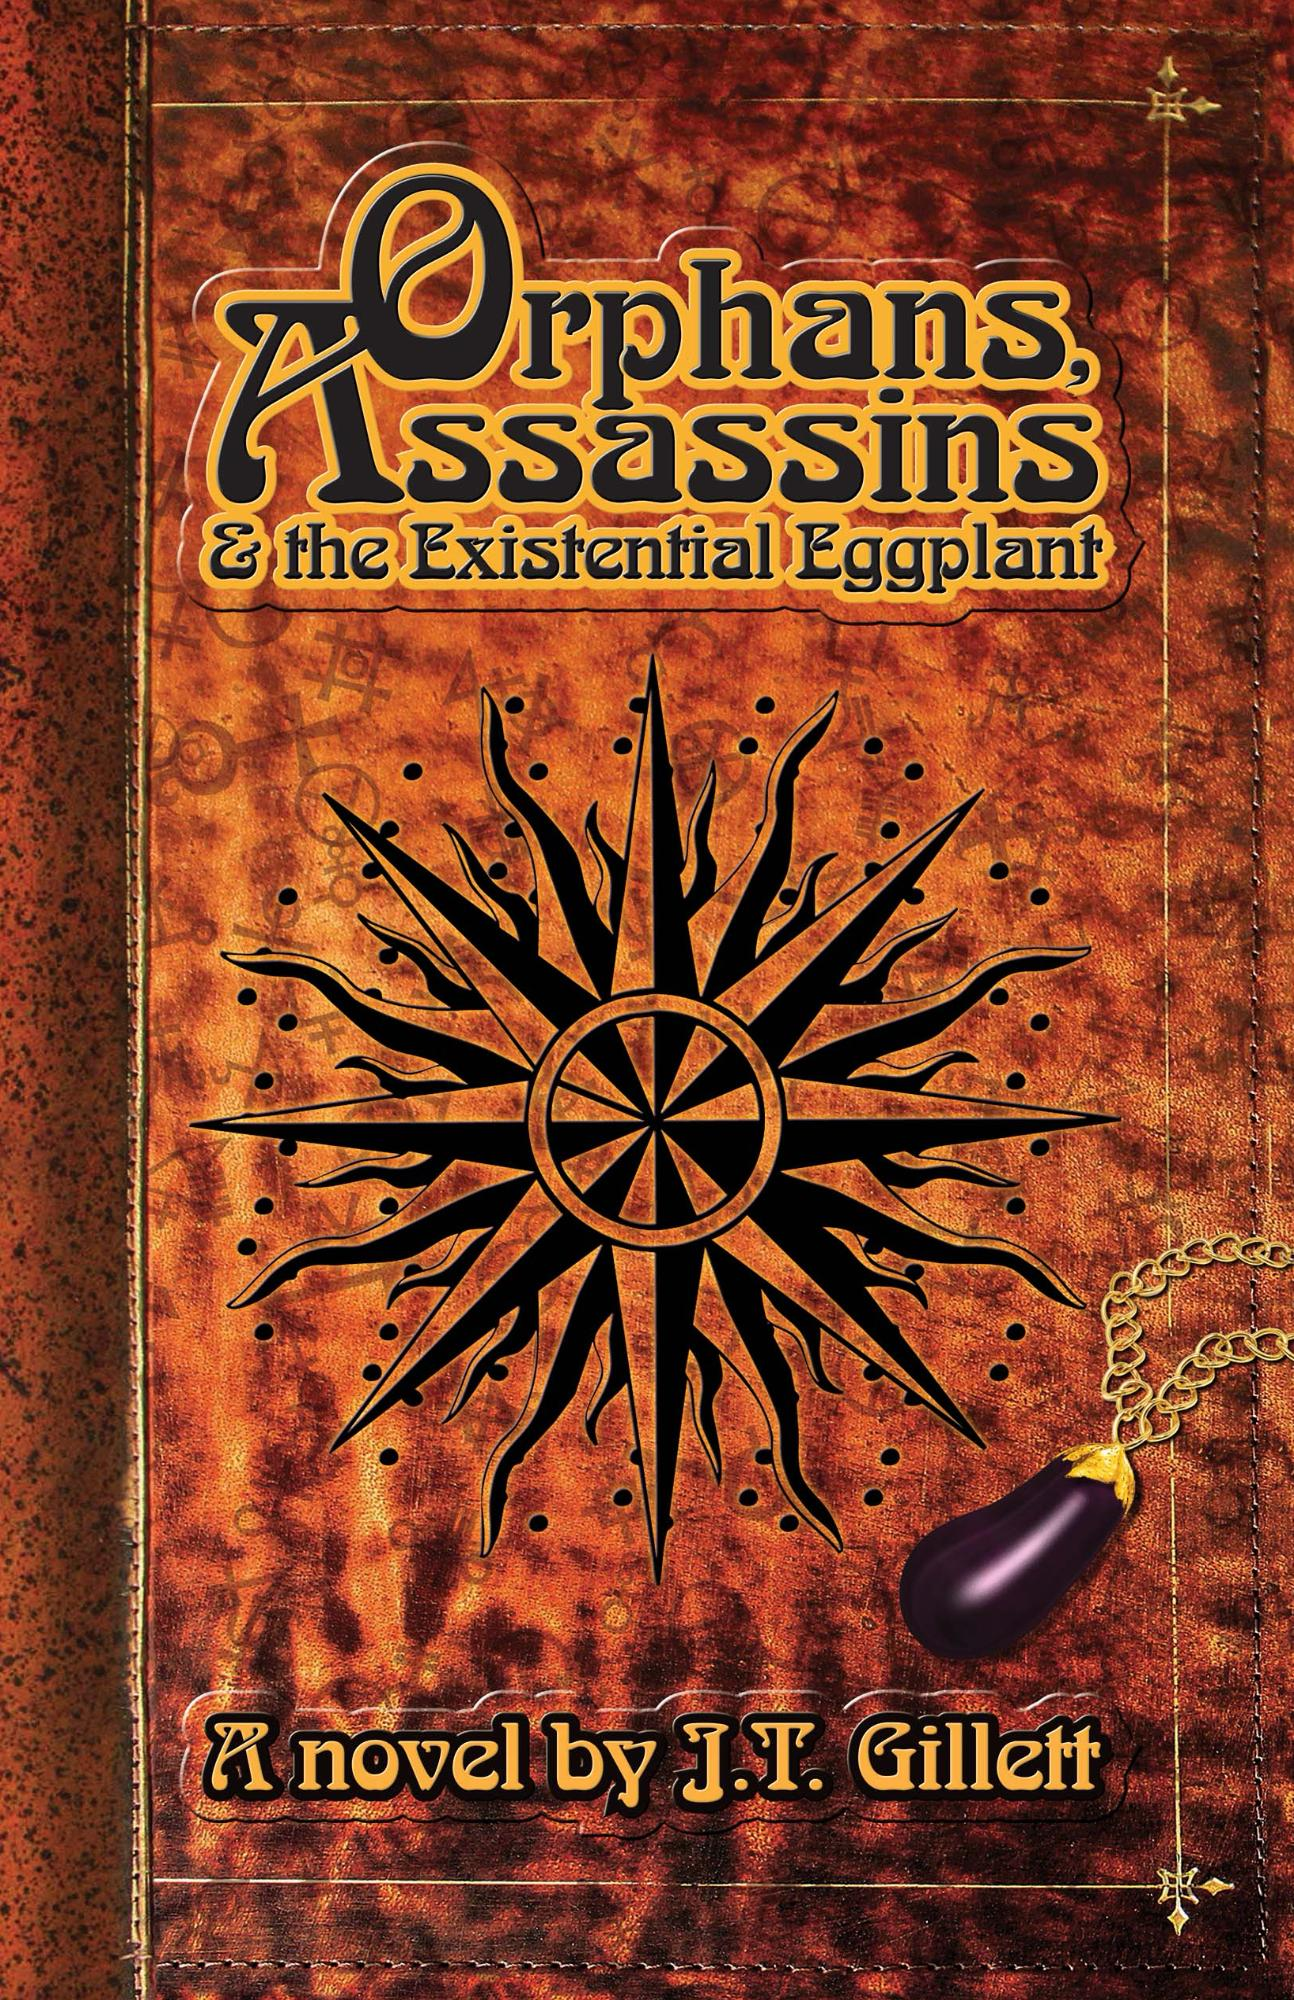 Orphans, Assassins, and the Existential Eggplant